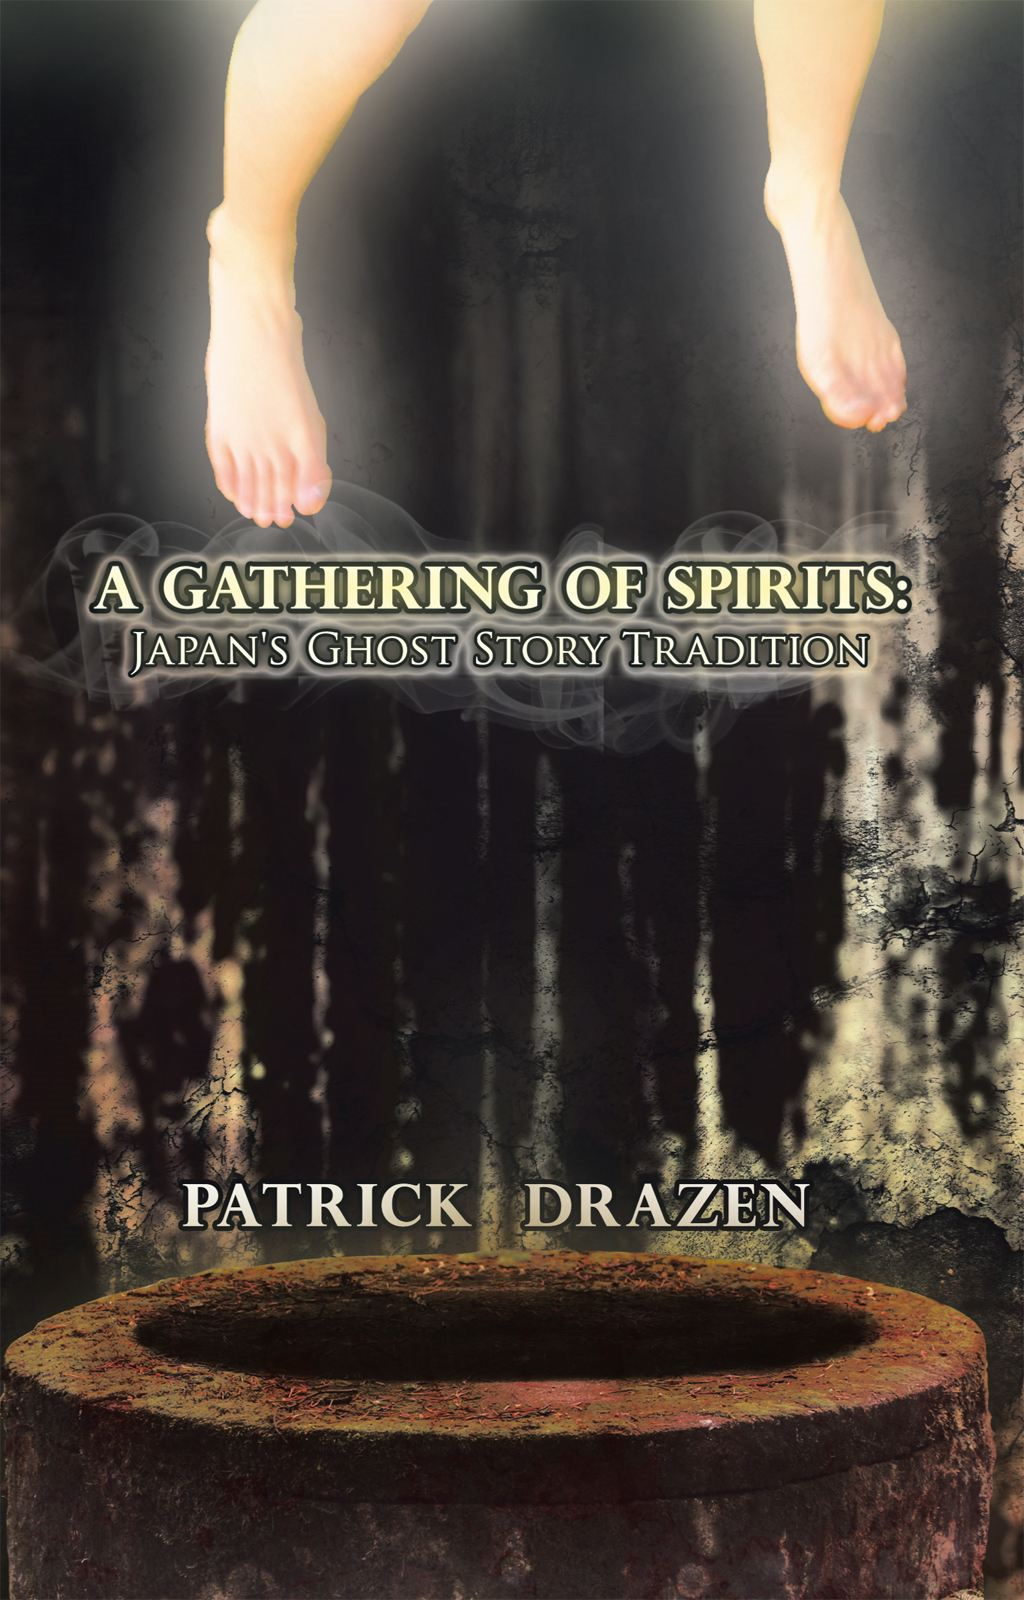 A Gathering of Spirits: Japan's Ghost Story Tradition By: Patrick Drazen